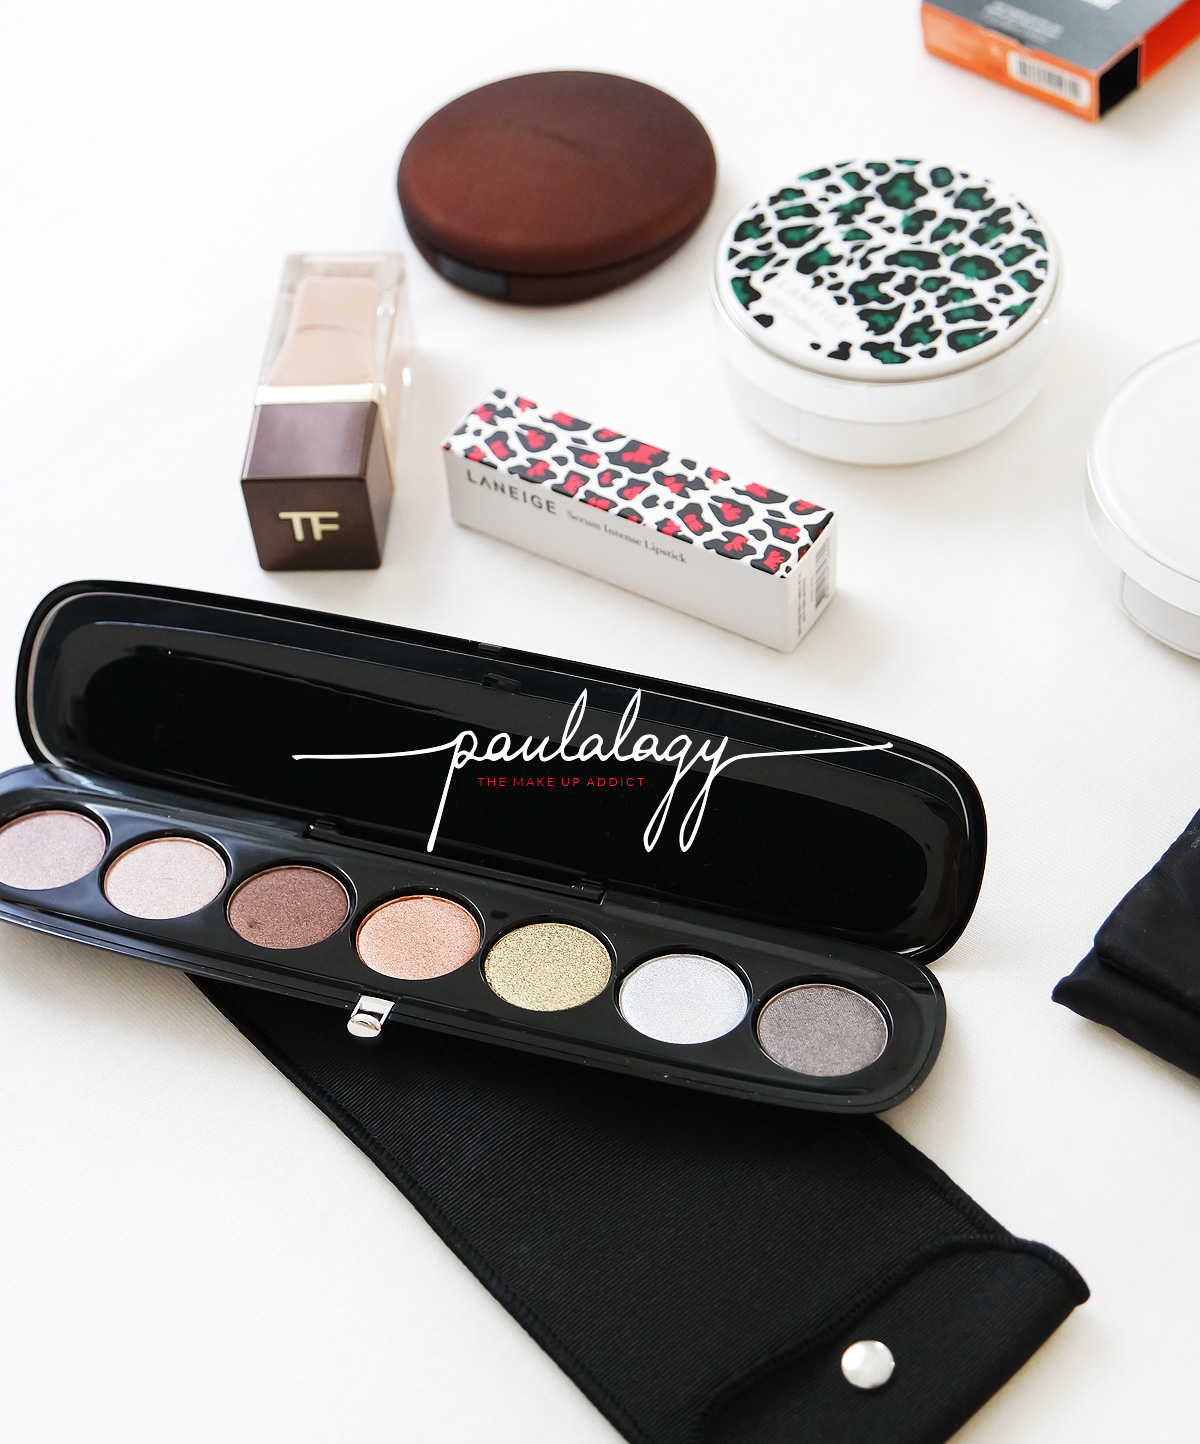 Paulalogy - The makeup box, Marc Jacobs beauty, Tom Ford